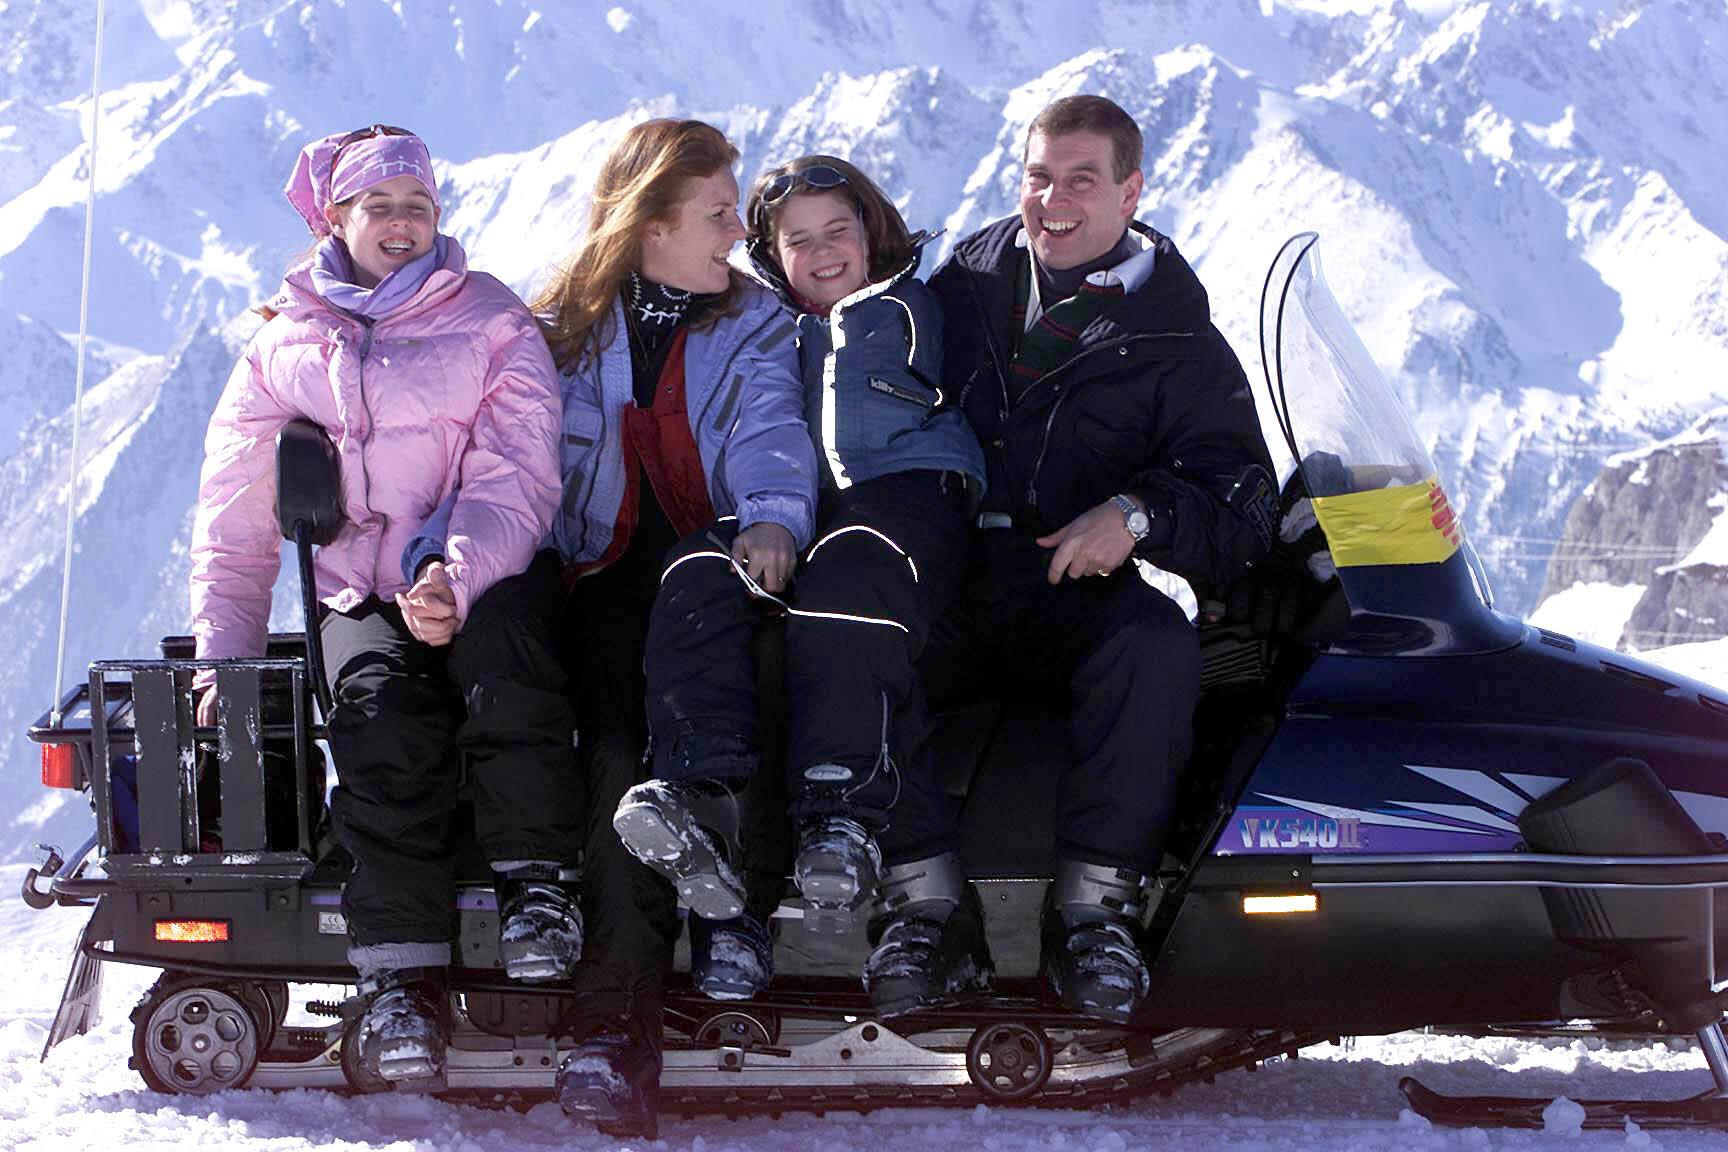 The Duke of York with his daughters Princess Eugenie (left) and Princess Beatrice (right) during their ski-ing holiday in the Swiss Alps.  The Duke was celebrating his 41st birthday on holiday with his ex-wife and children.   * The birthday is a double celebration for the family, who toasted Princess Eugenie's success at passing a school entrance exam. Ten-year-old Eugenie's exam success means she will now enrol at a private school near Windsor Castle.